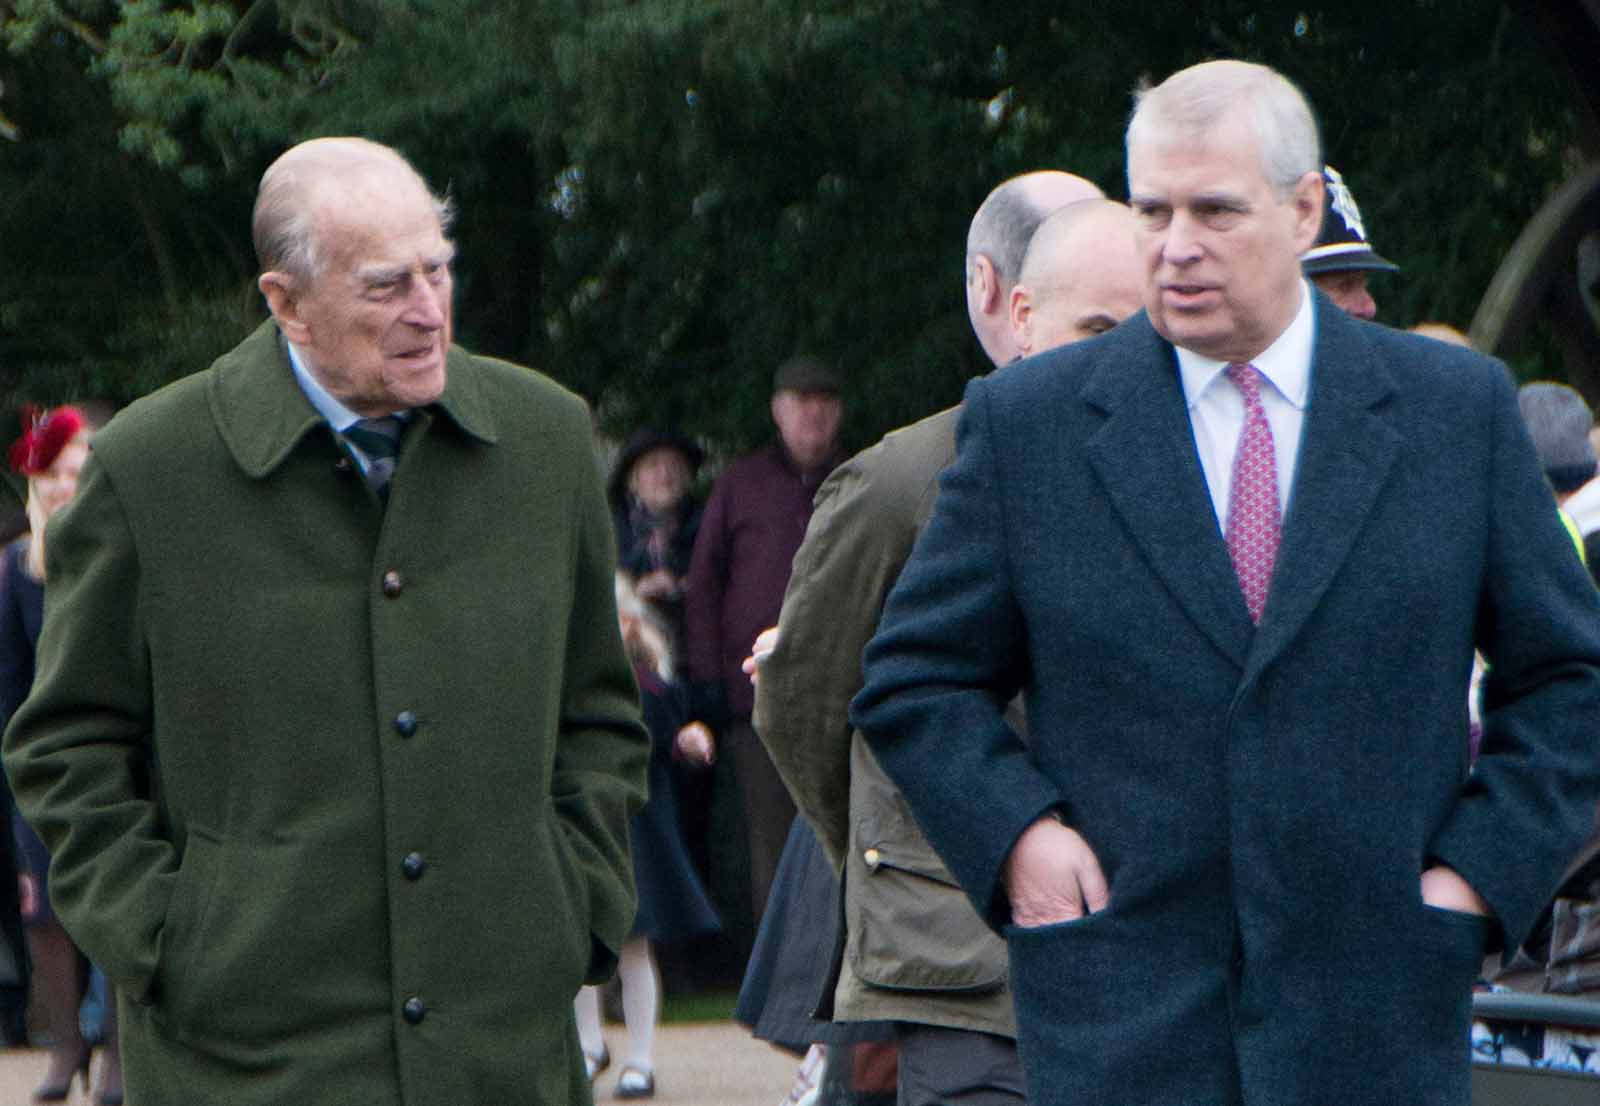 Prince Philip, Duke of Edinburgh, has his hands full thanks to his son Prince Andrew and his ties to Epstein. Is Philip going to disown Andrew?